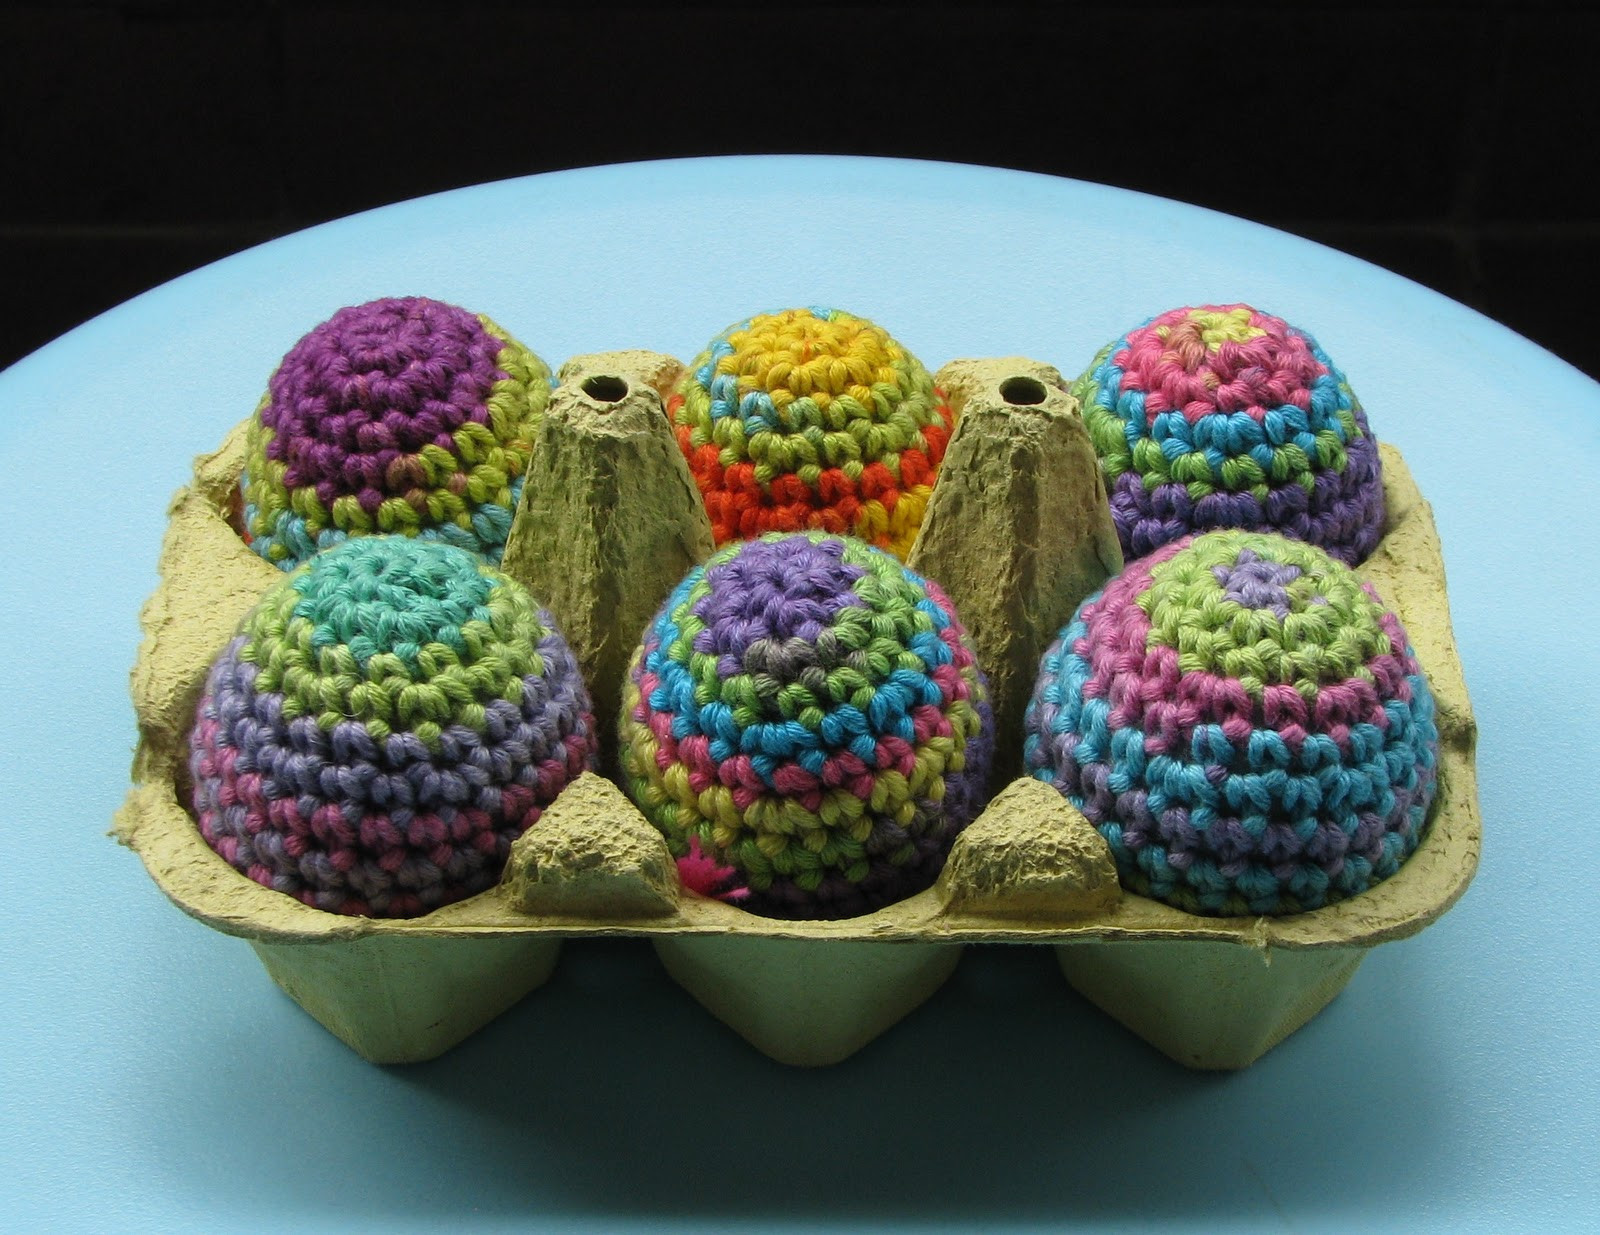 Crochet Easter Eggs Lovely Rainbow Easter Eggs Huevos De Pascua Of Incredible 43 Ideas Crochet Easter Eggs